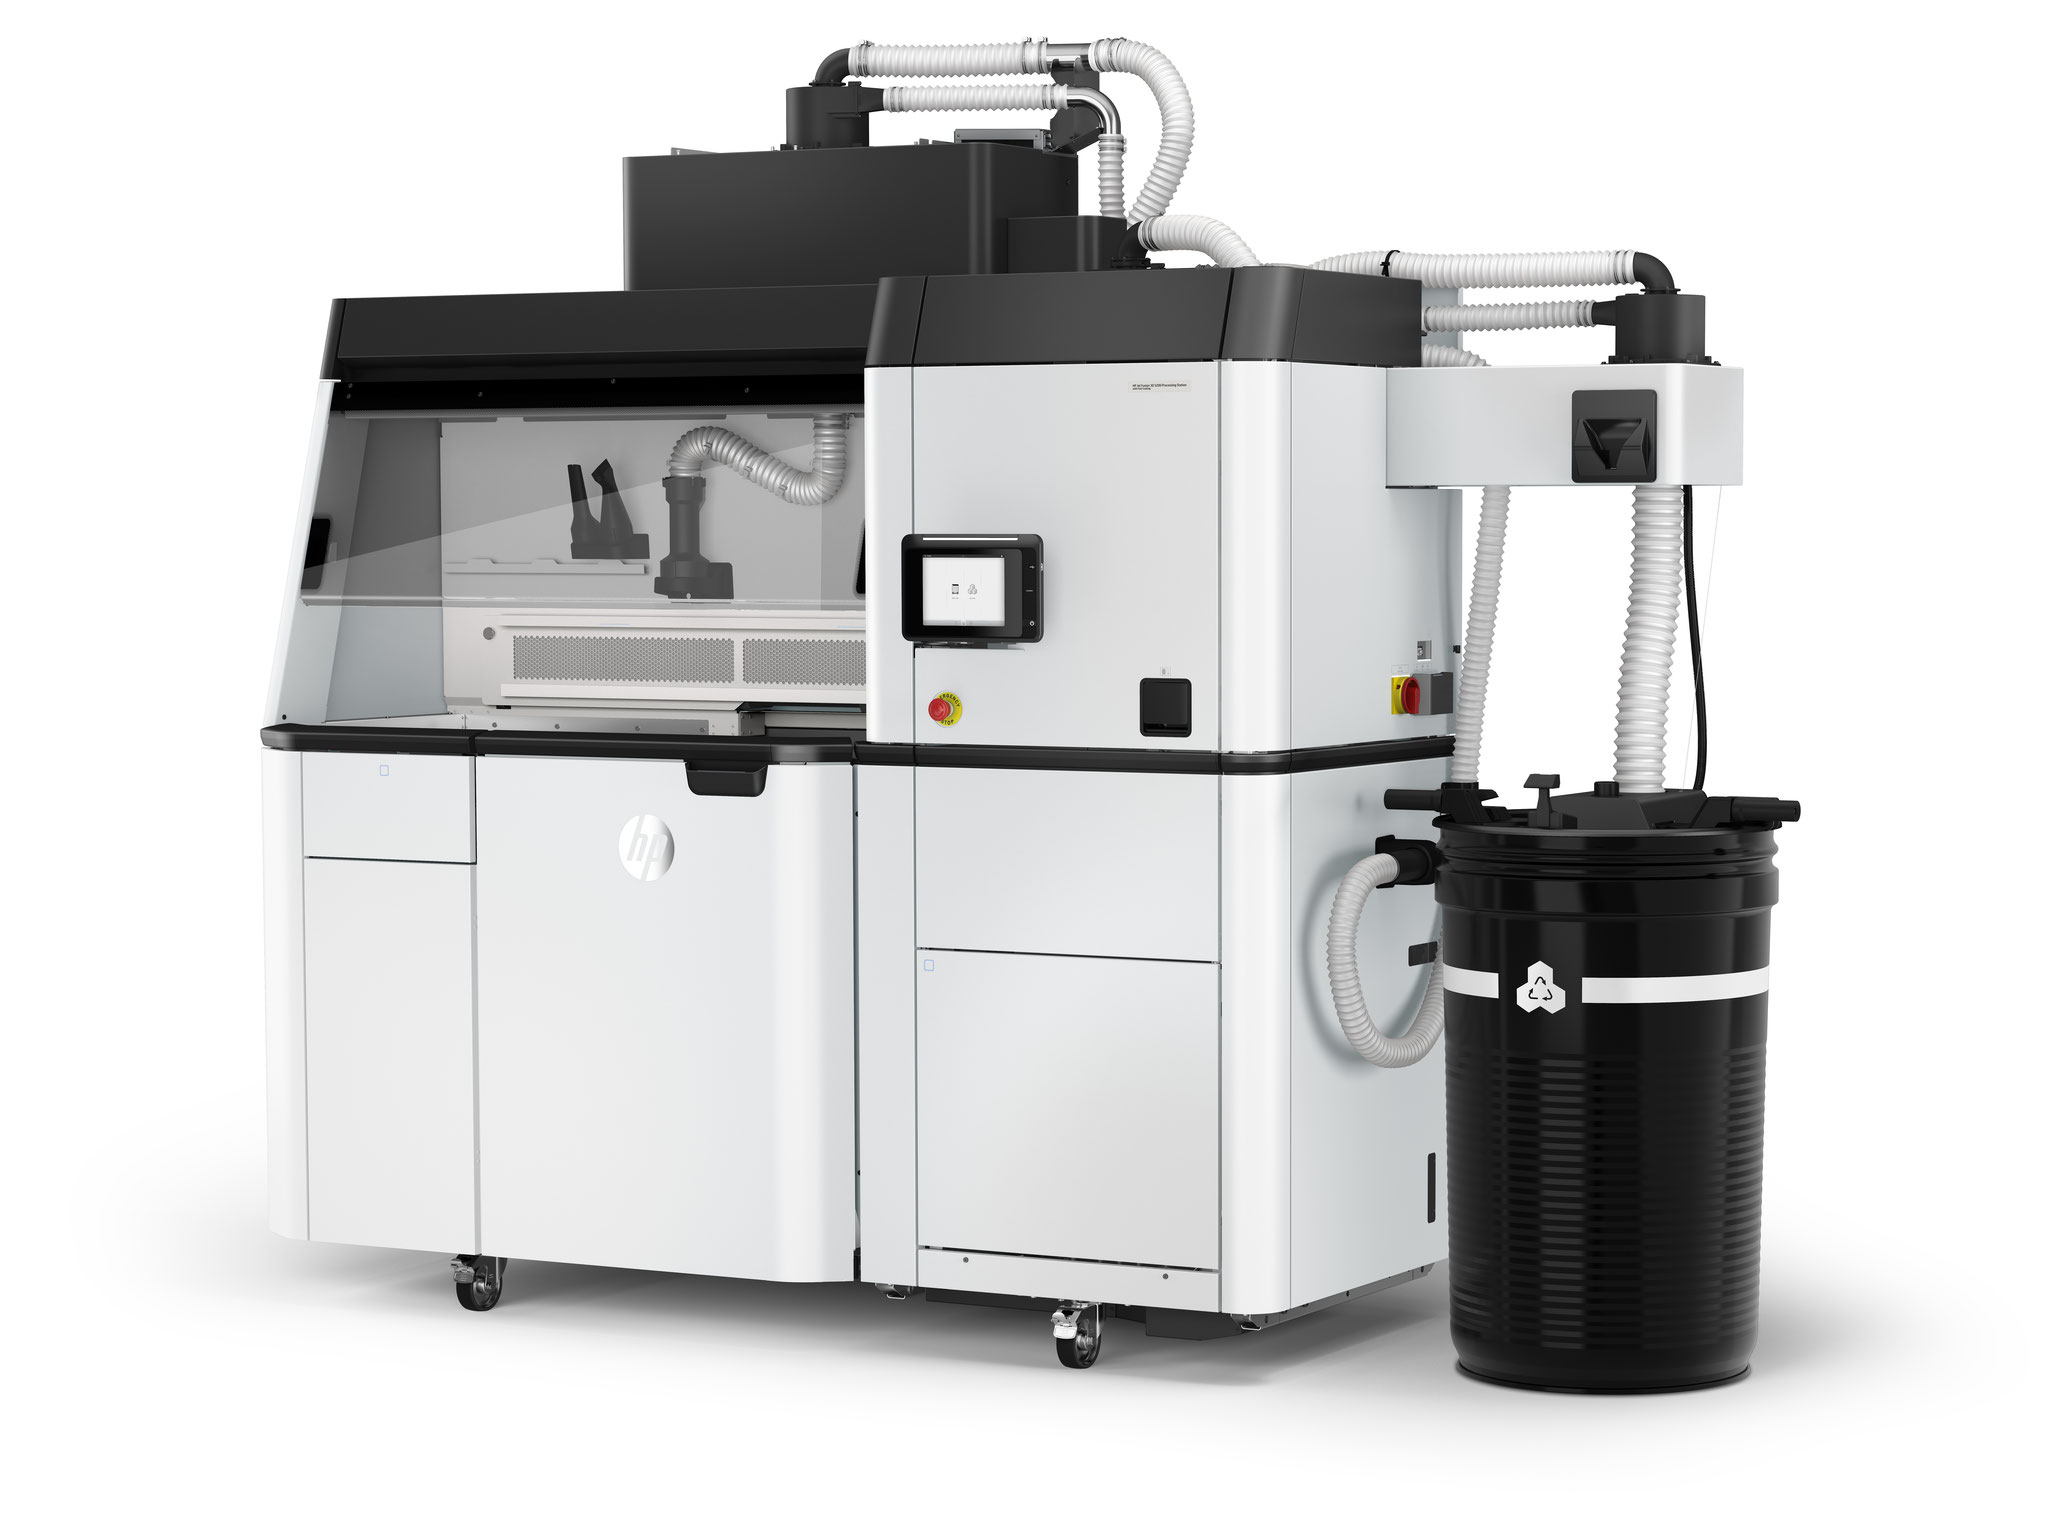 HP Jet Fusion 5200 Series 3D Processing Station